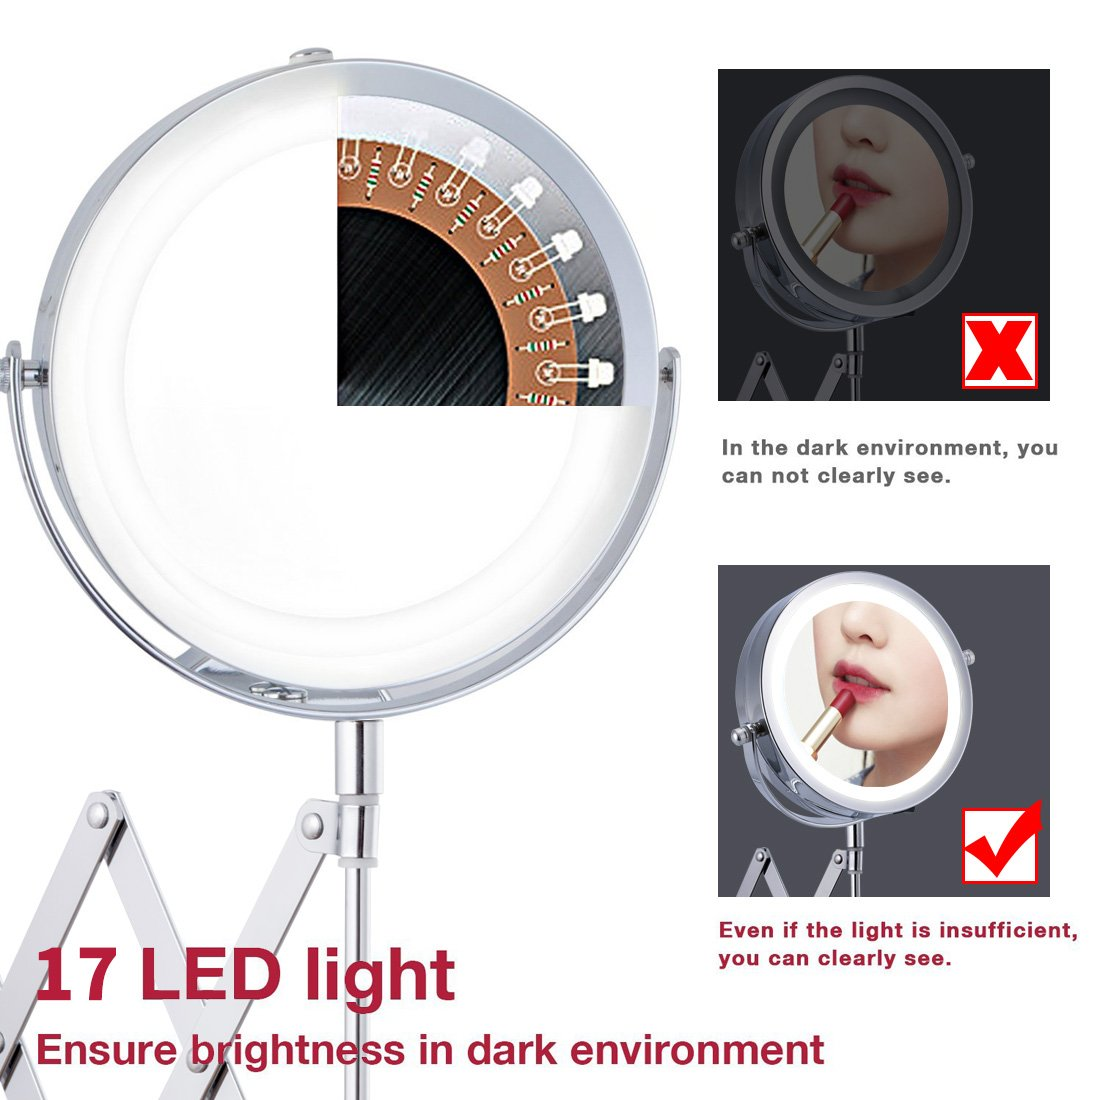 FIRMLOC Lighted LED Makeup Vanity Mirror 3X//1X Magnification Wall Mounted Double Side Adjustable Rotating Powered by 4 x AAA Batteries not Included